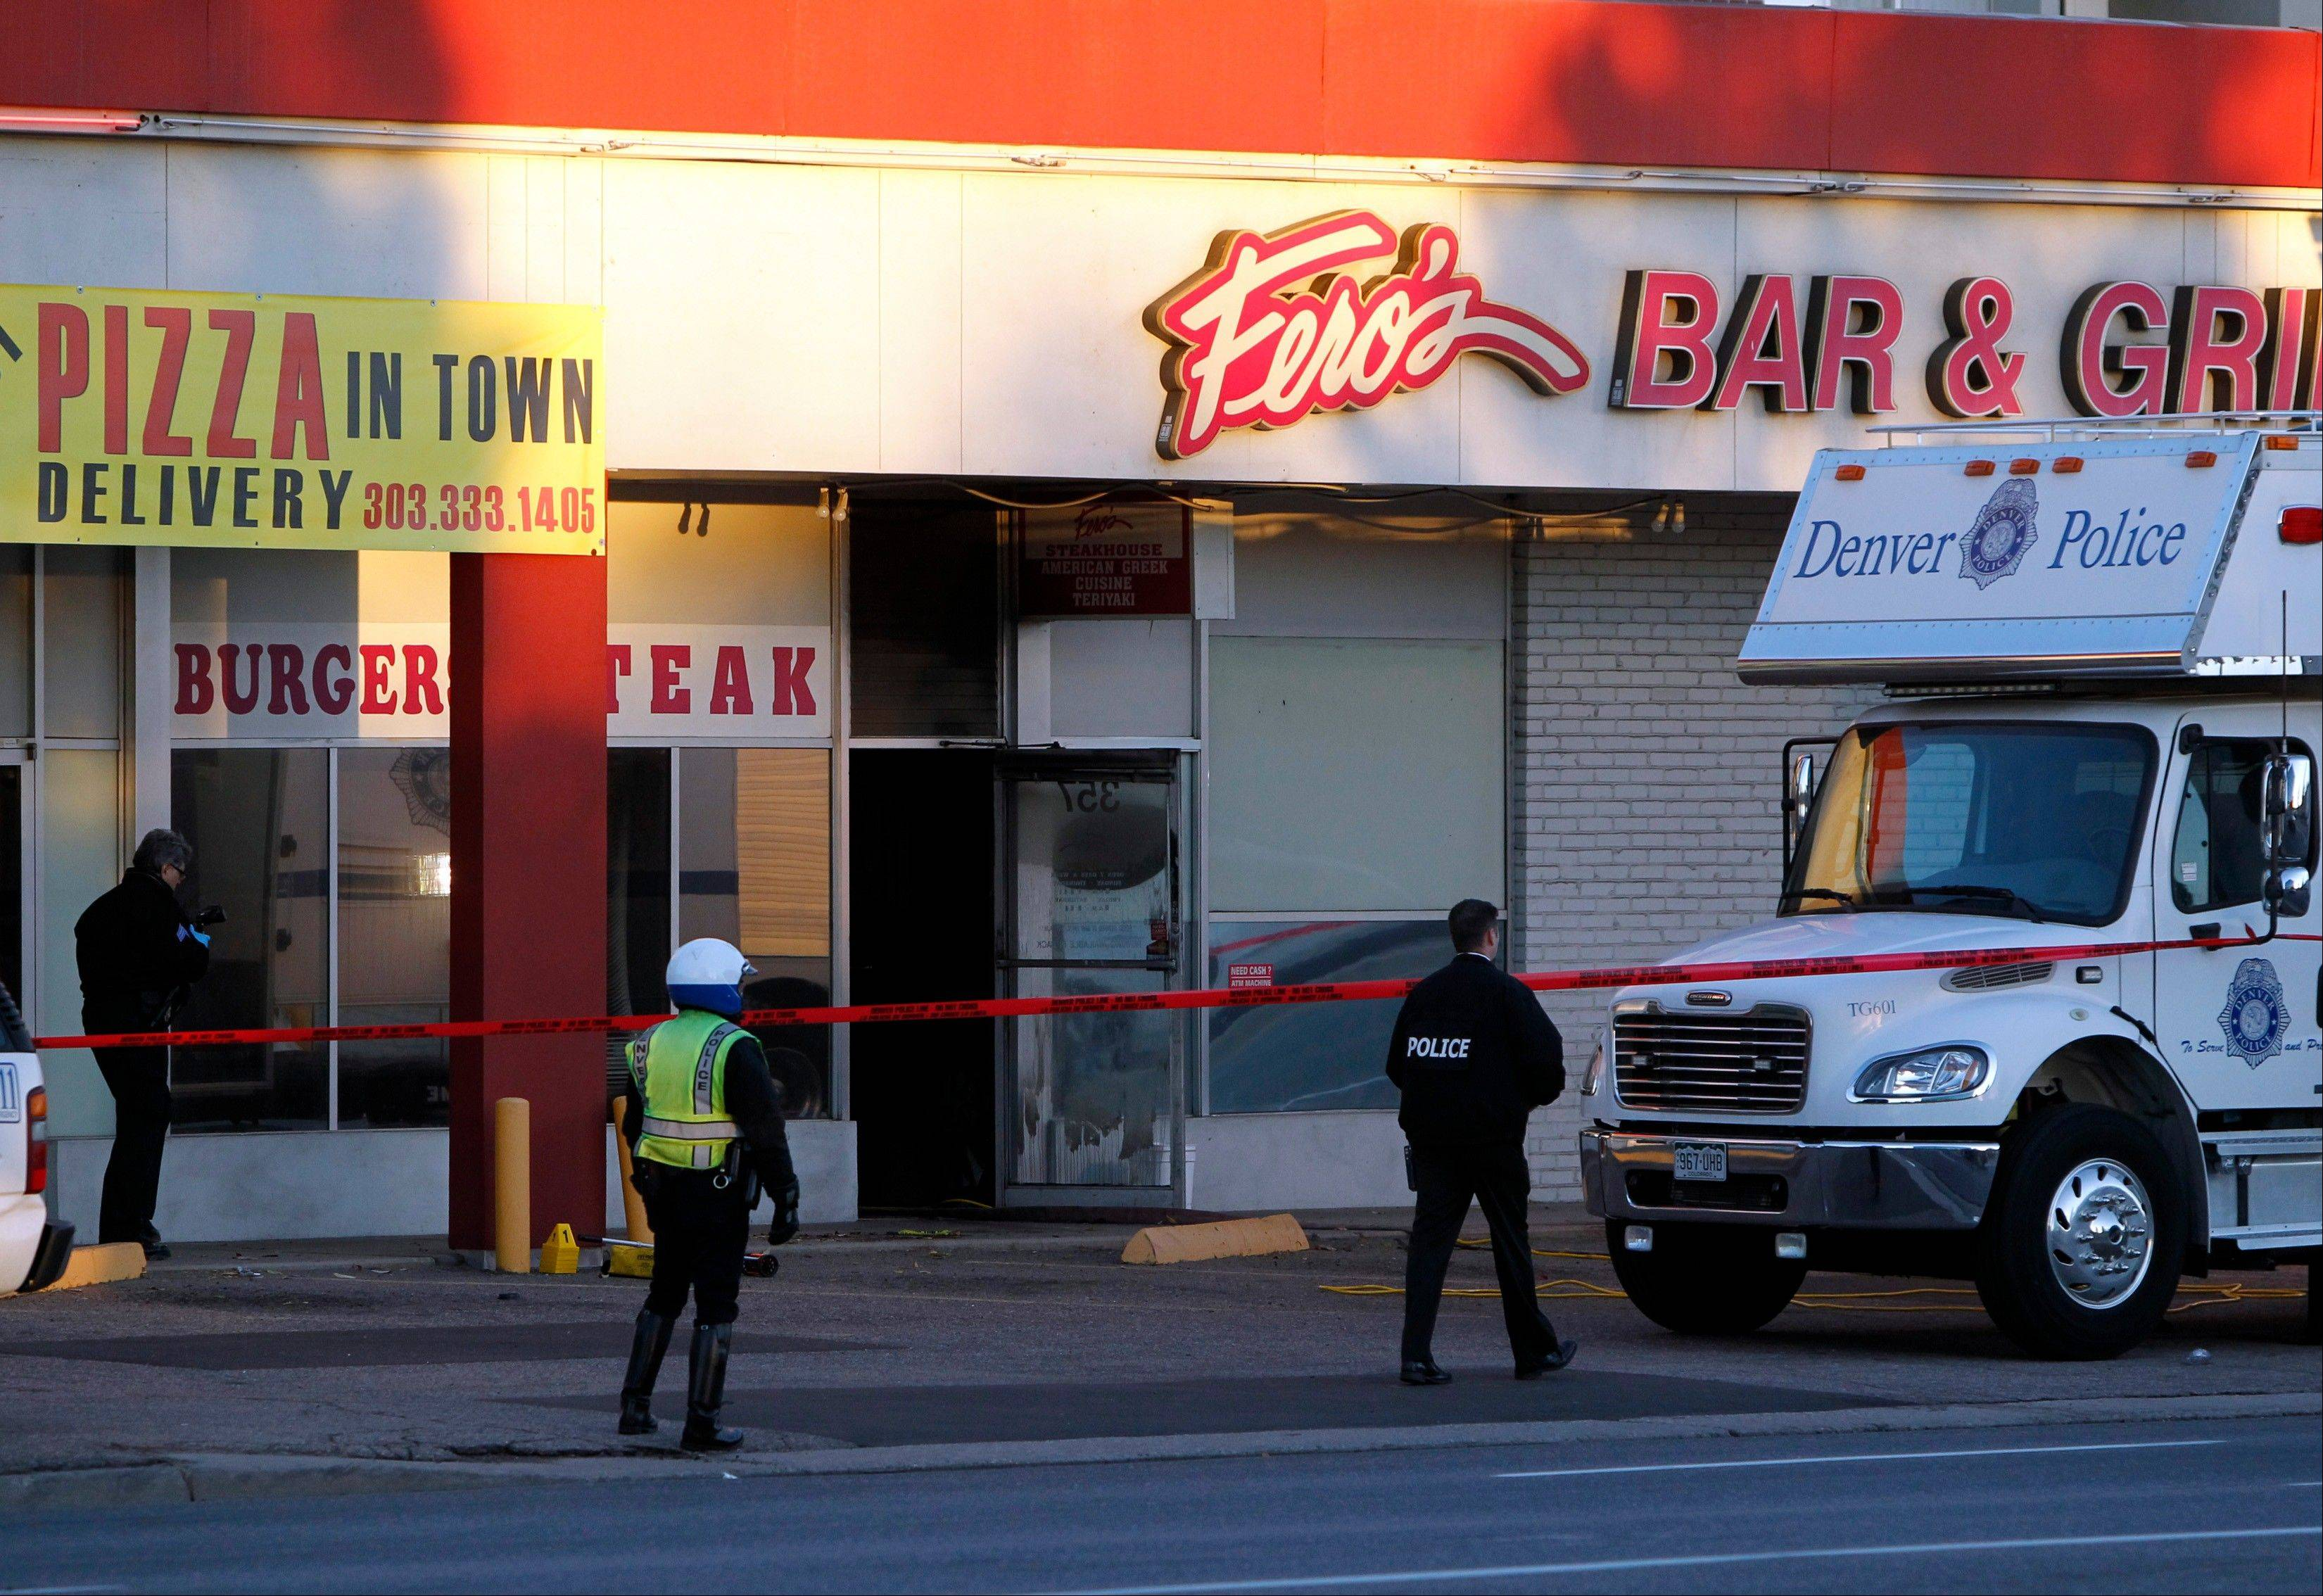 Police investigate at Fero's Bar and Grill in Denver on Wednesday, Oct. 17, 2012, where the bodies of a man and four woman were discovered after firefighters extinguished a fire at the bar early Wednesday morning. Police think the blaze was set to cover up their slayings.